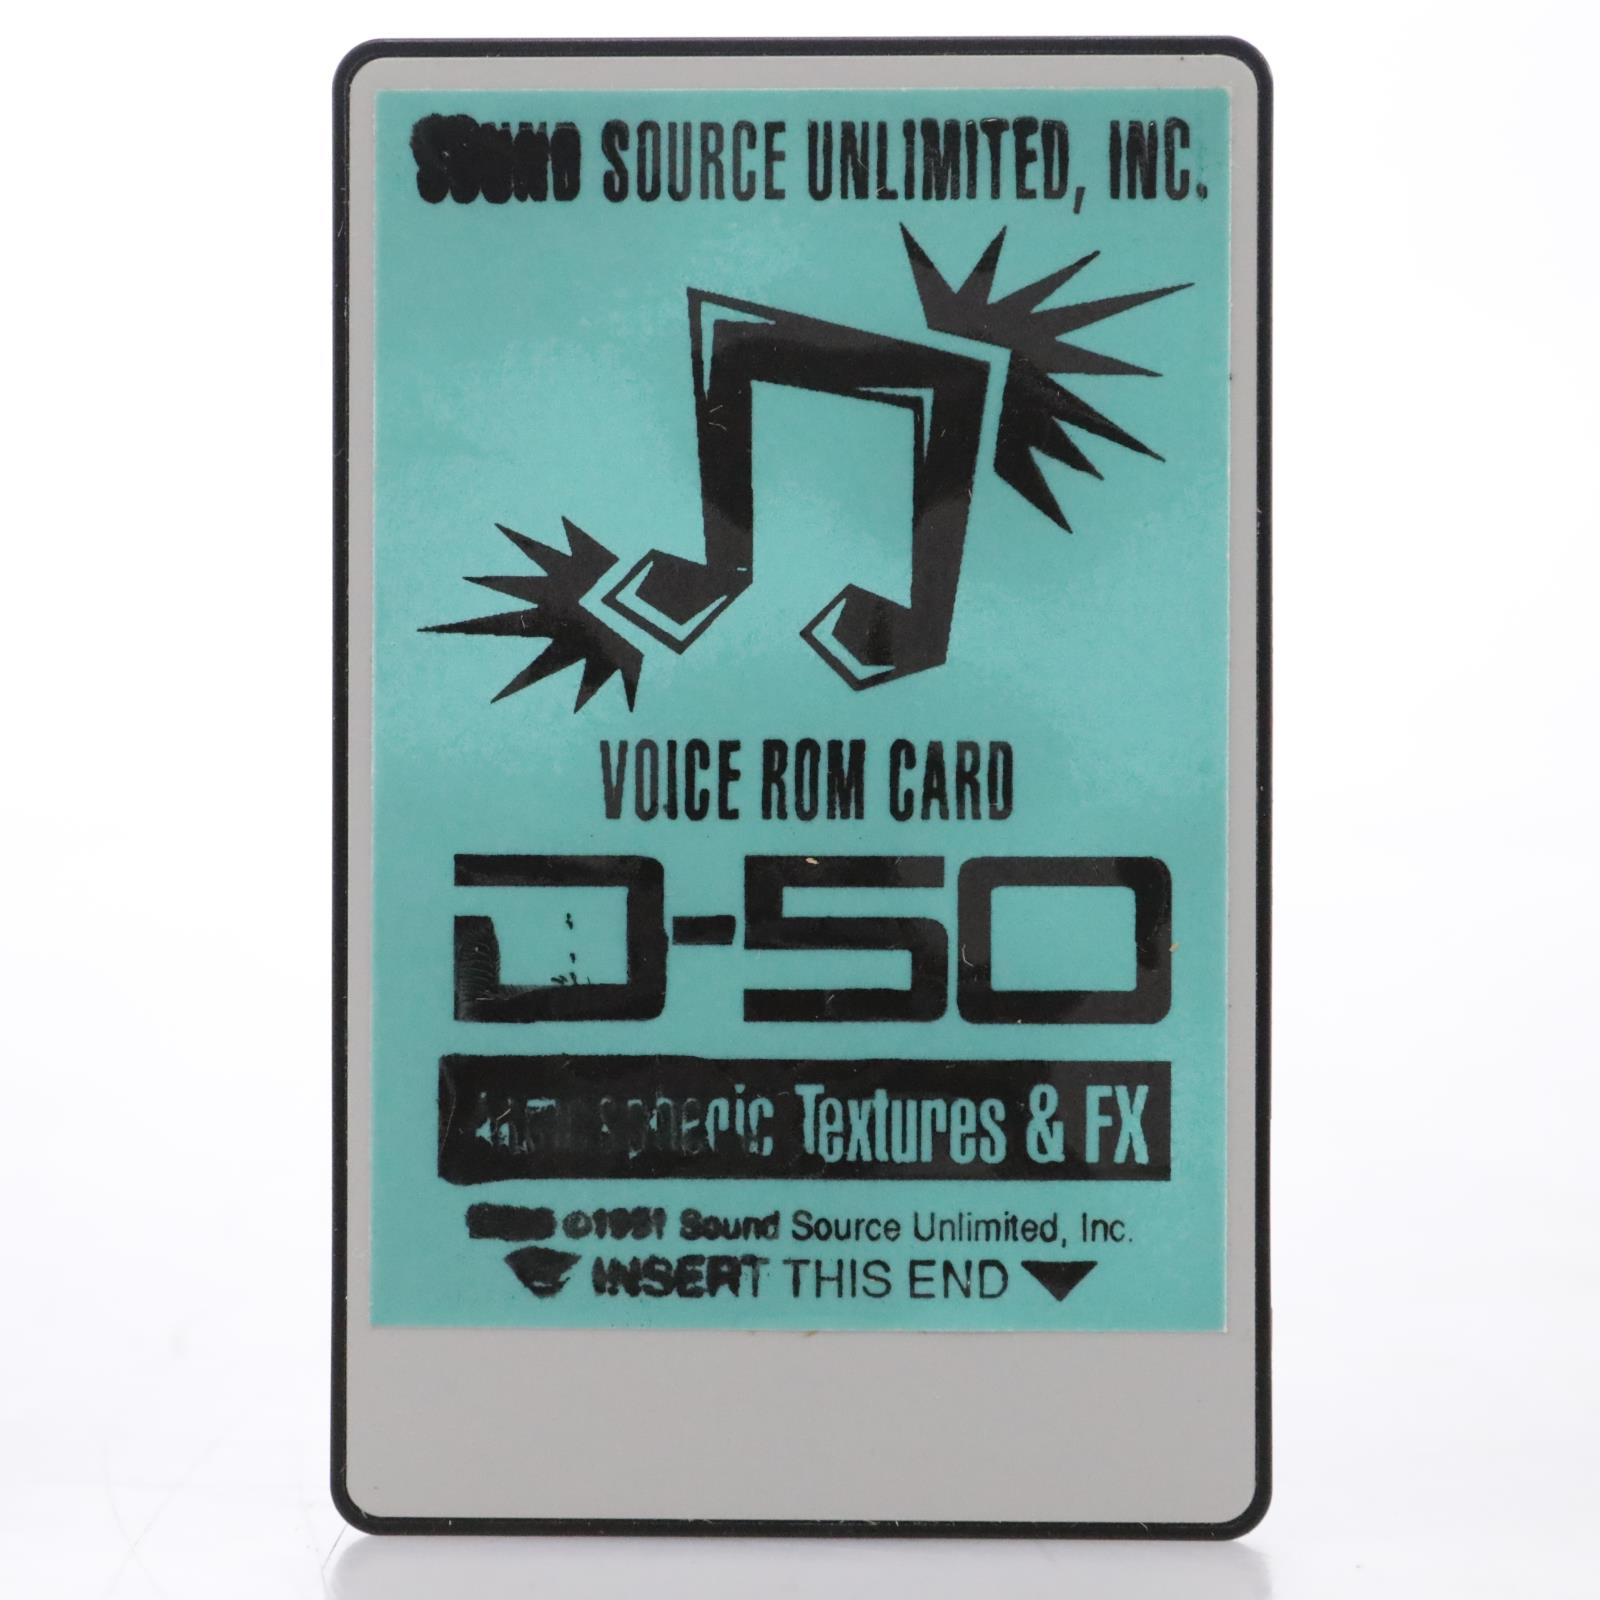 Sound Source Unlimited D-50 Atmospheric Textures & FX Voice ROM Card #44124